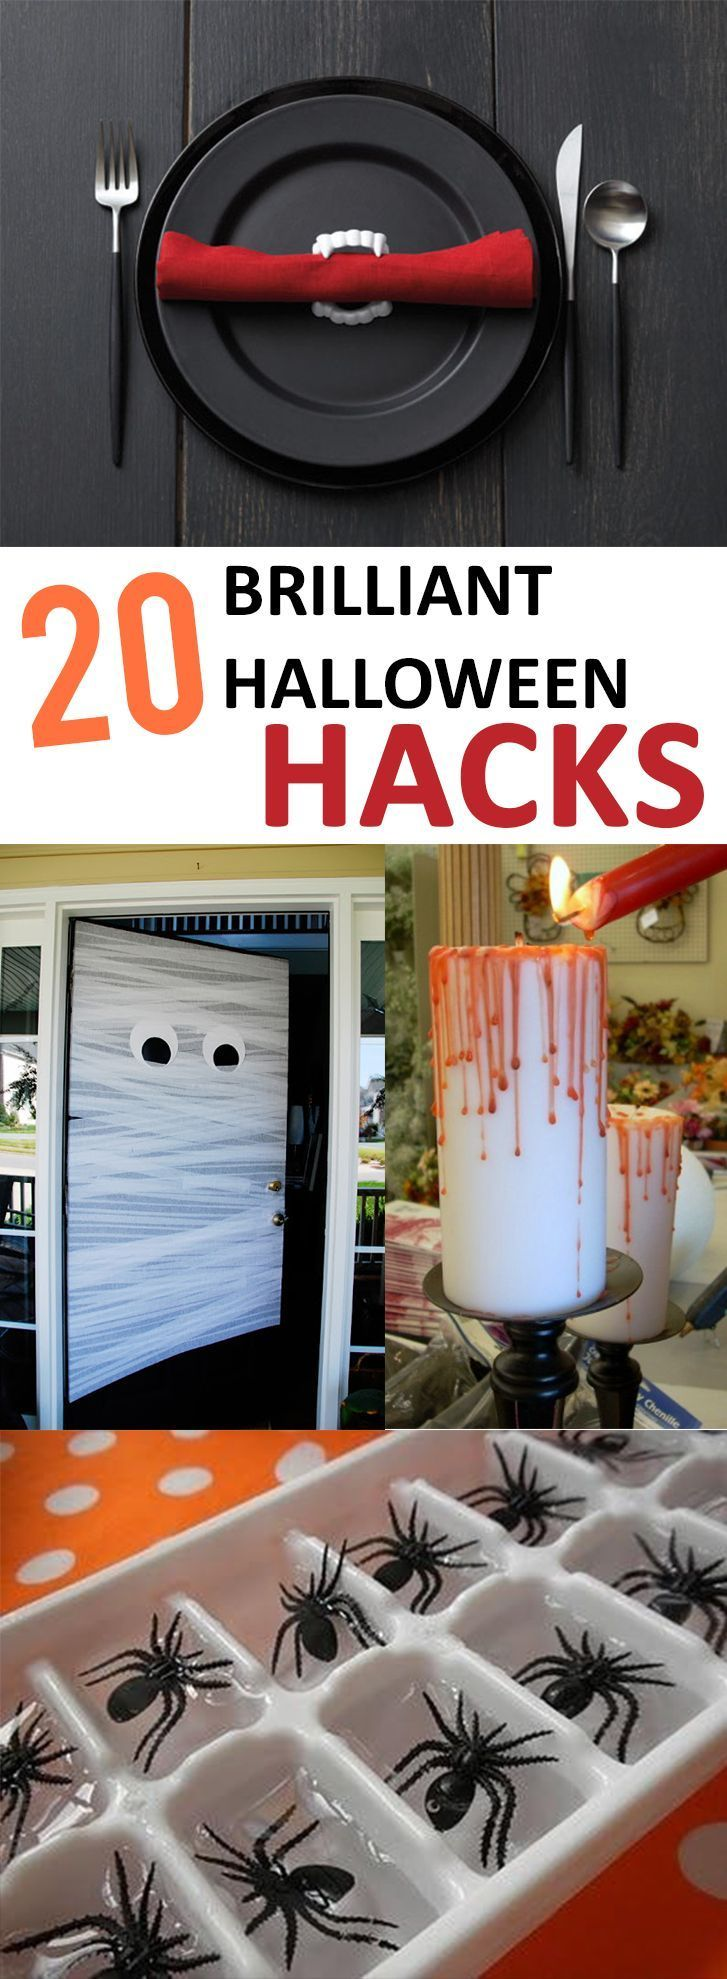 20 Brilliant Halloween Hacks That Will Change October for the Rest of Your Life